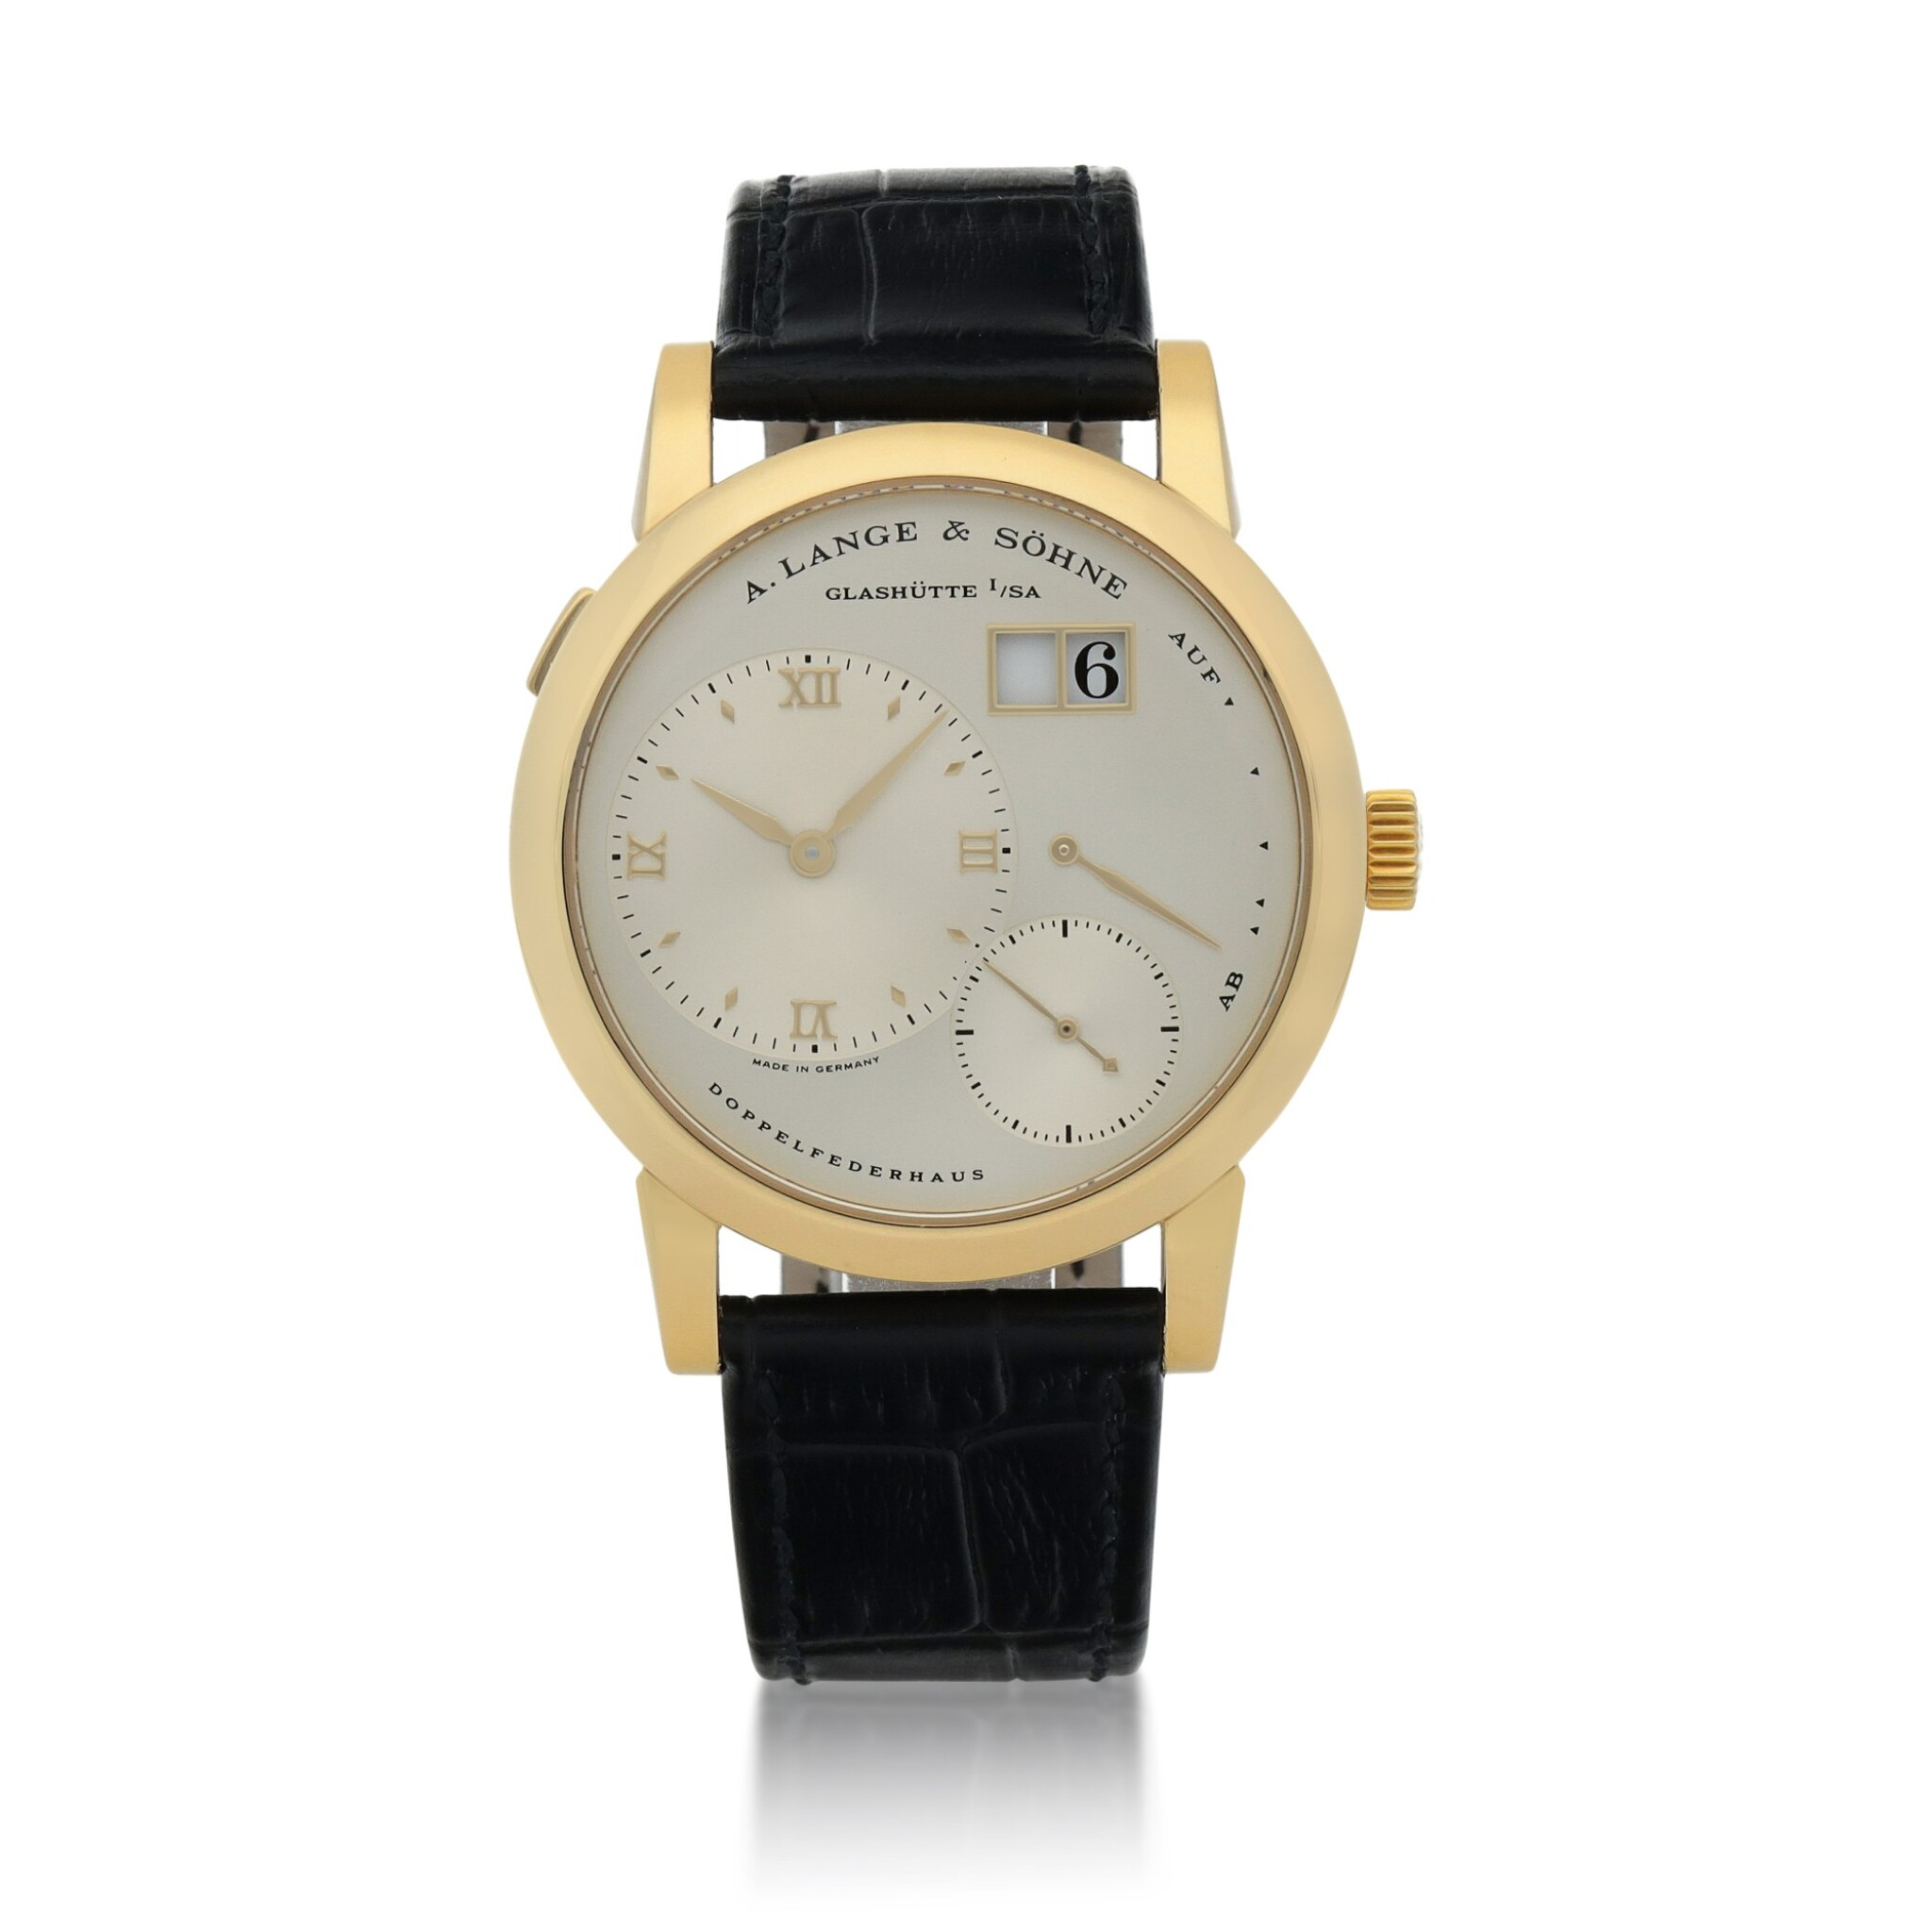 View full screen - View 1 of Lot 432. Lange 1, Ref. 101.021 Yellow gold wristwatch with digital date display and power reserve indication Circa 2001 | 朗格 101.021型號「Lange 1」黃金腕錶備數字日期及動力儲存顯示,年份約2001.